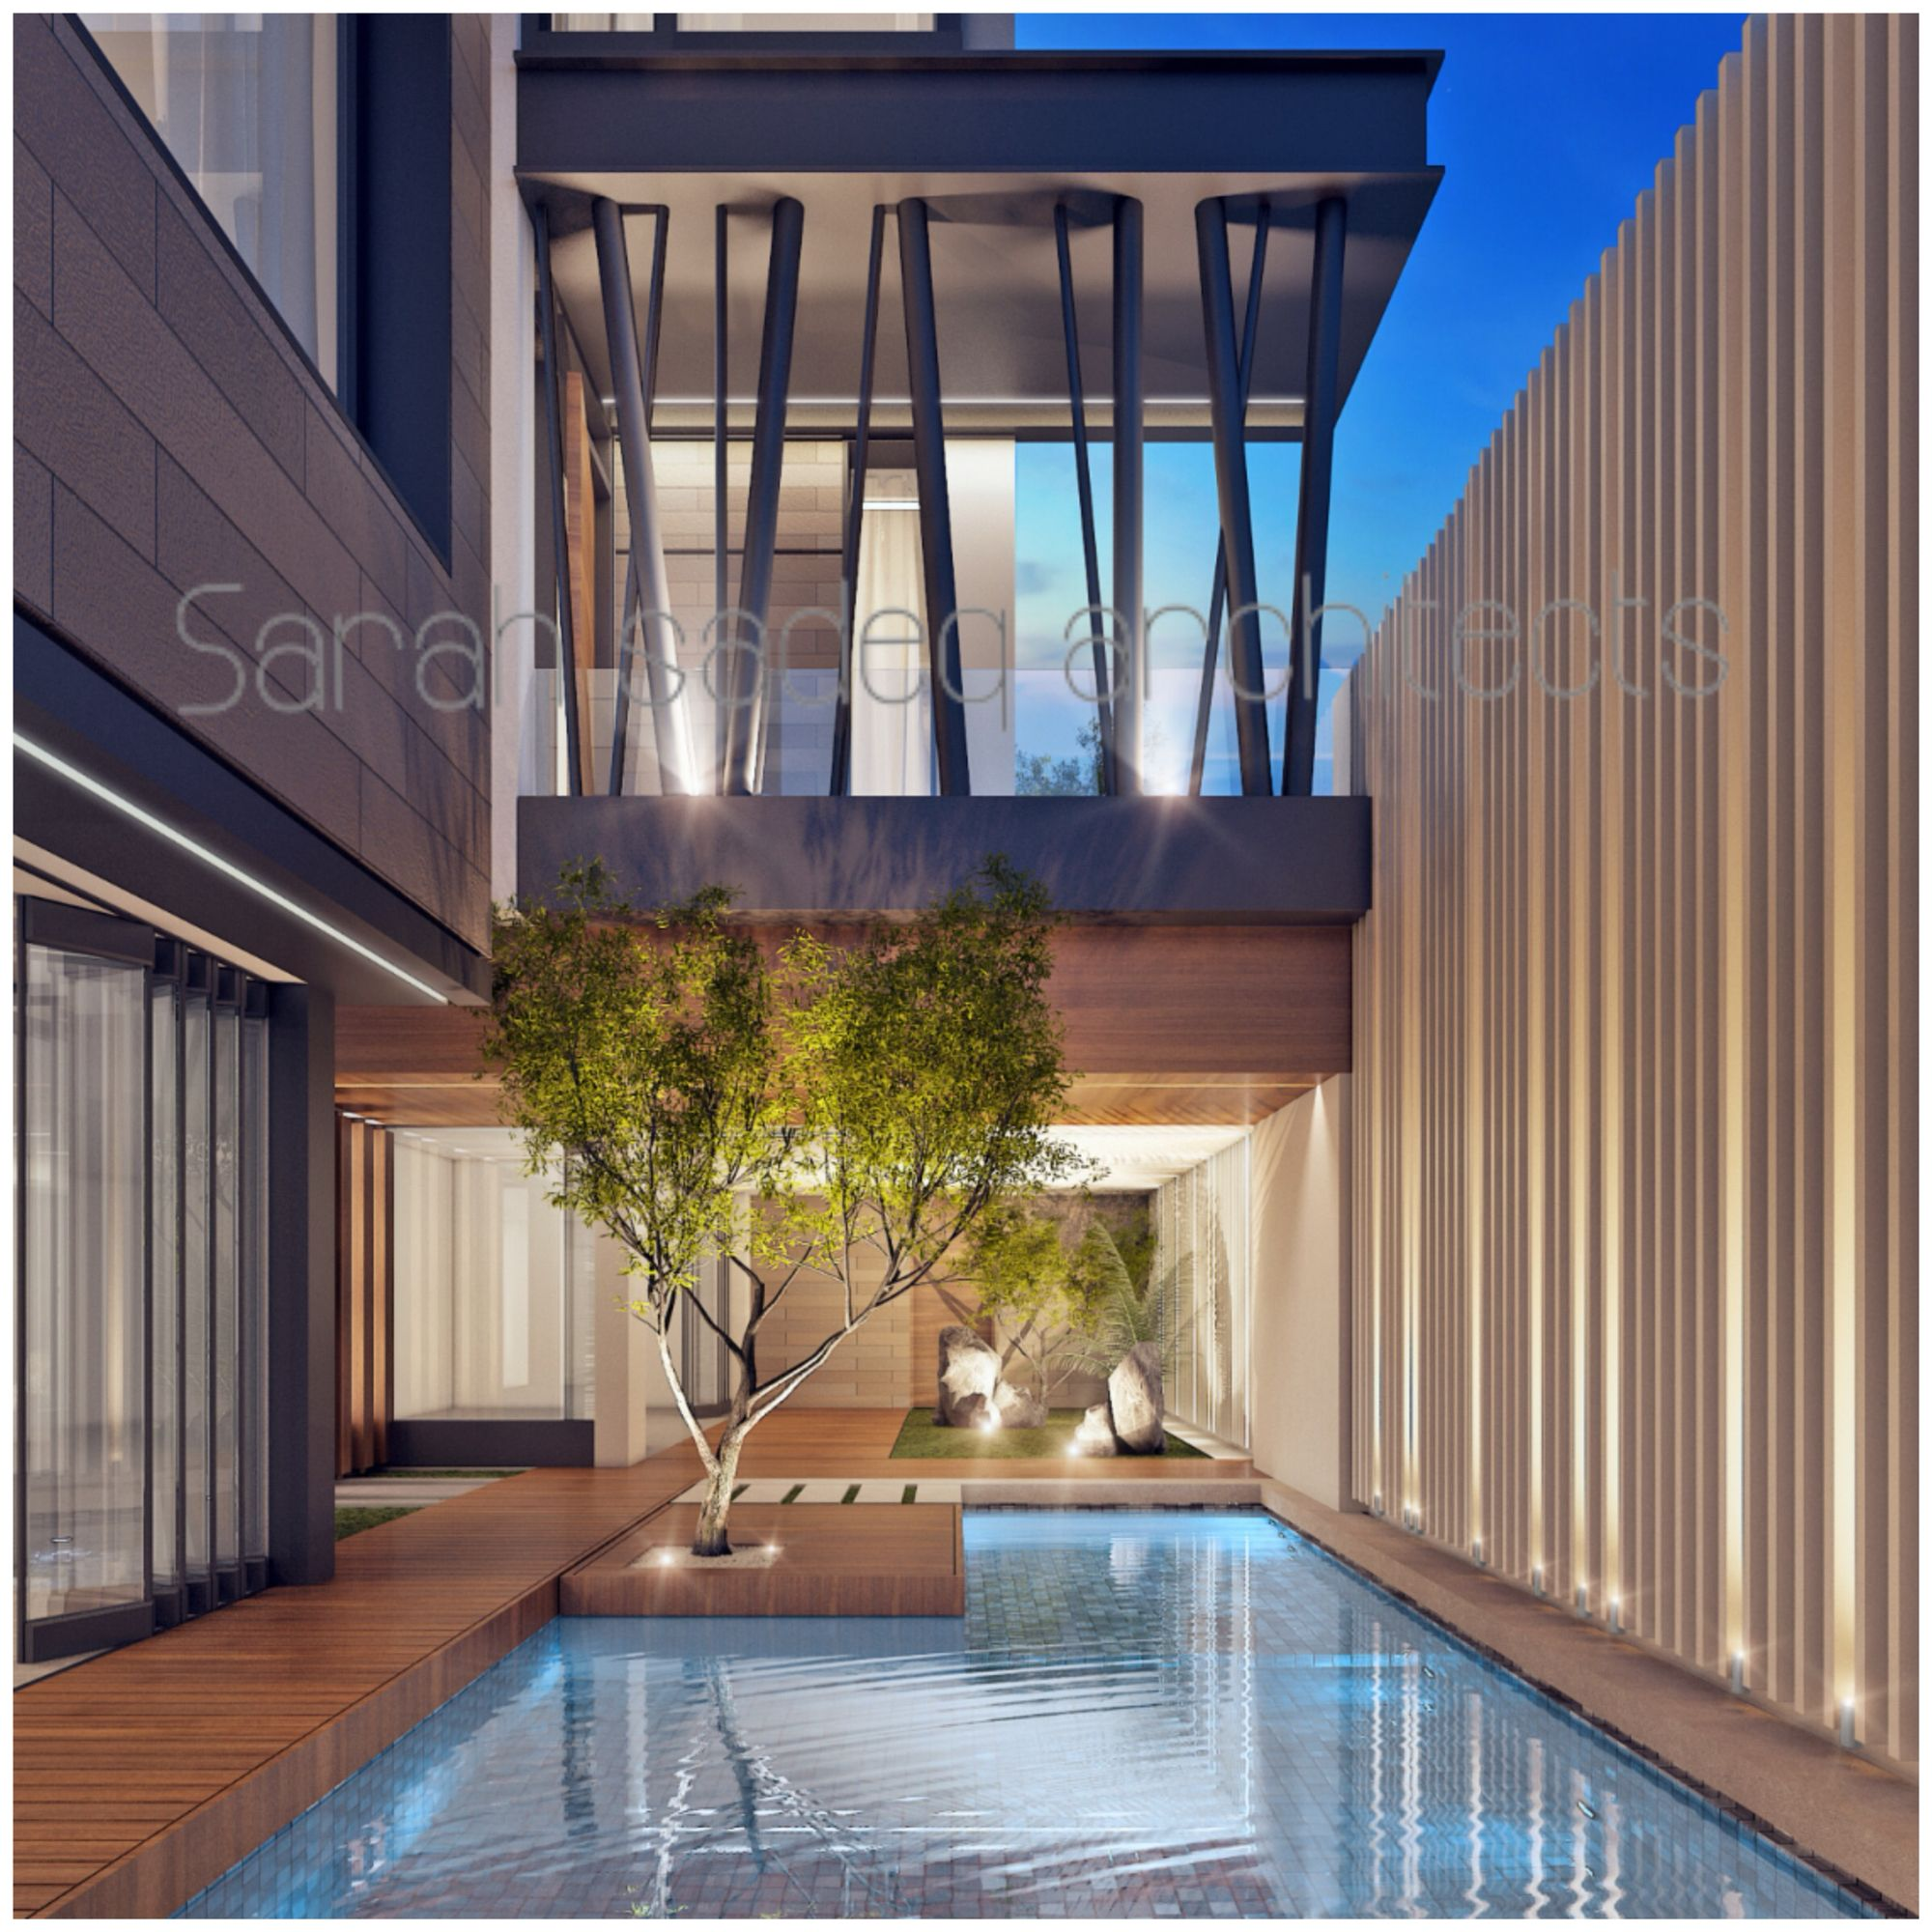 Private Villa Sarah Sadeq Architects Kuwait: Private Villa , Kuwait , By Sarah Sadeq Architects